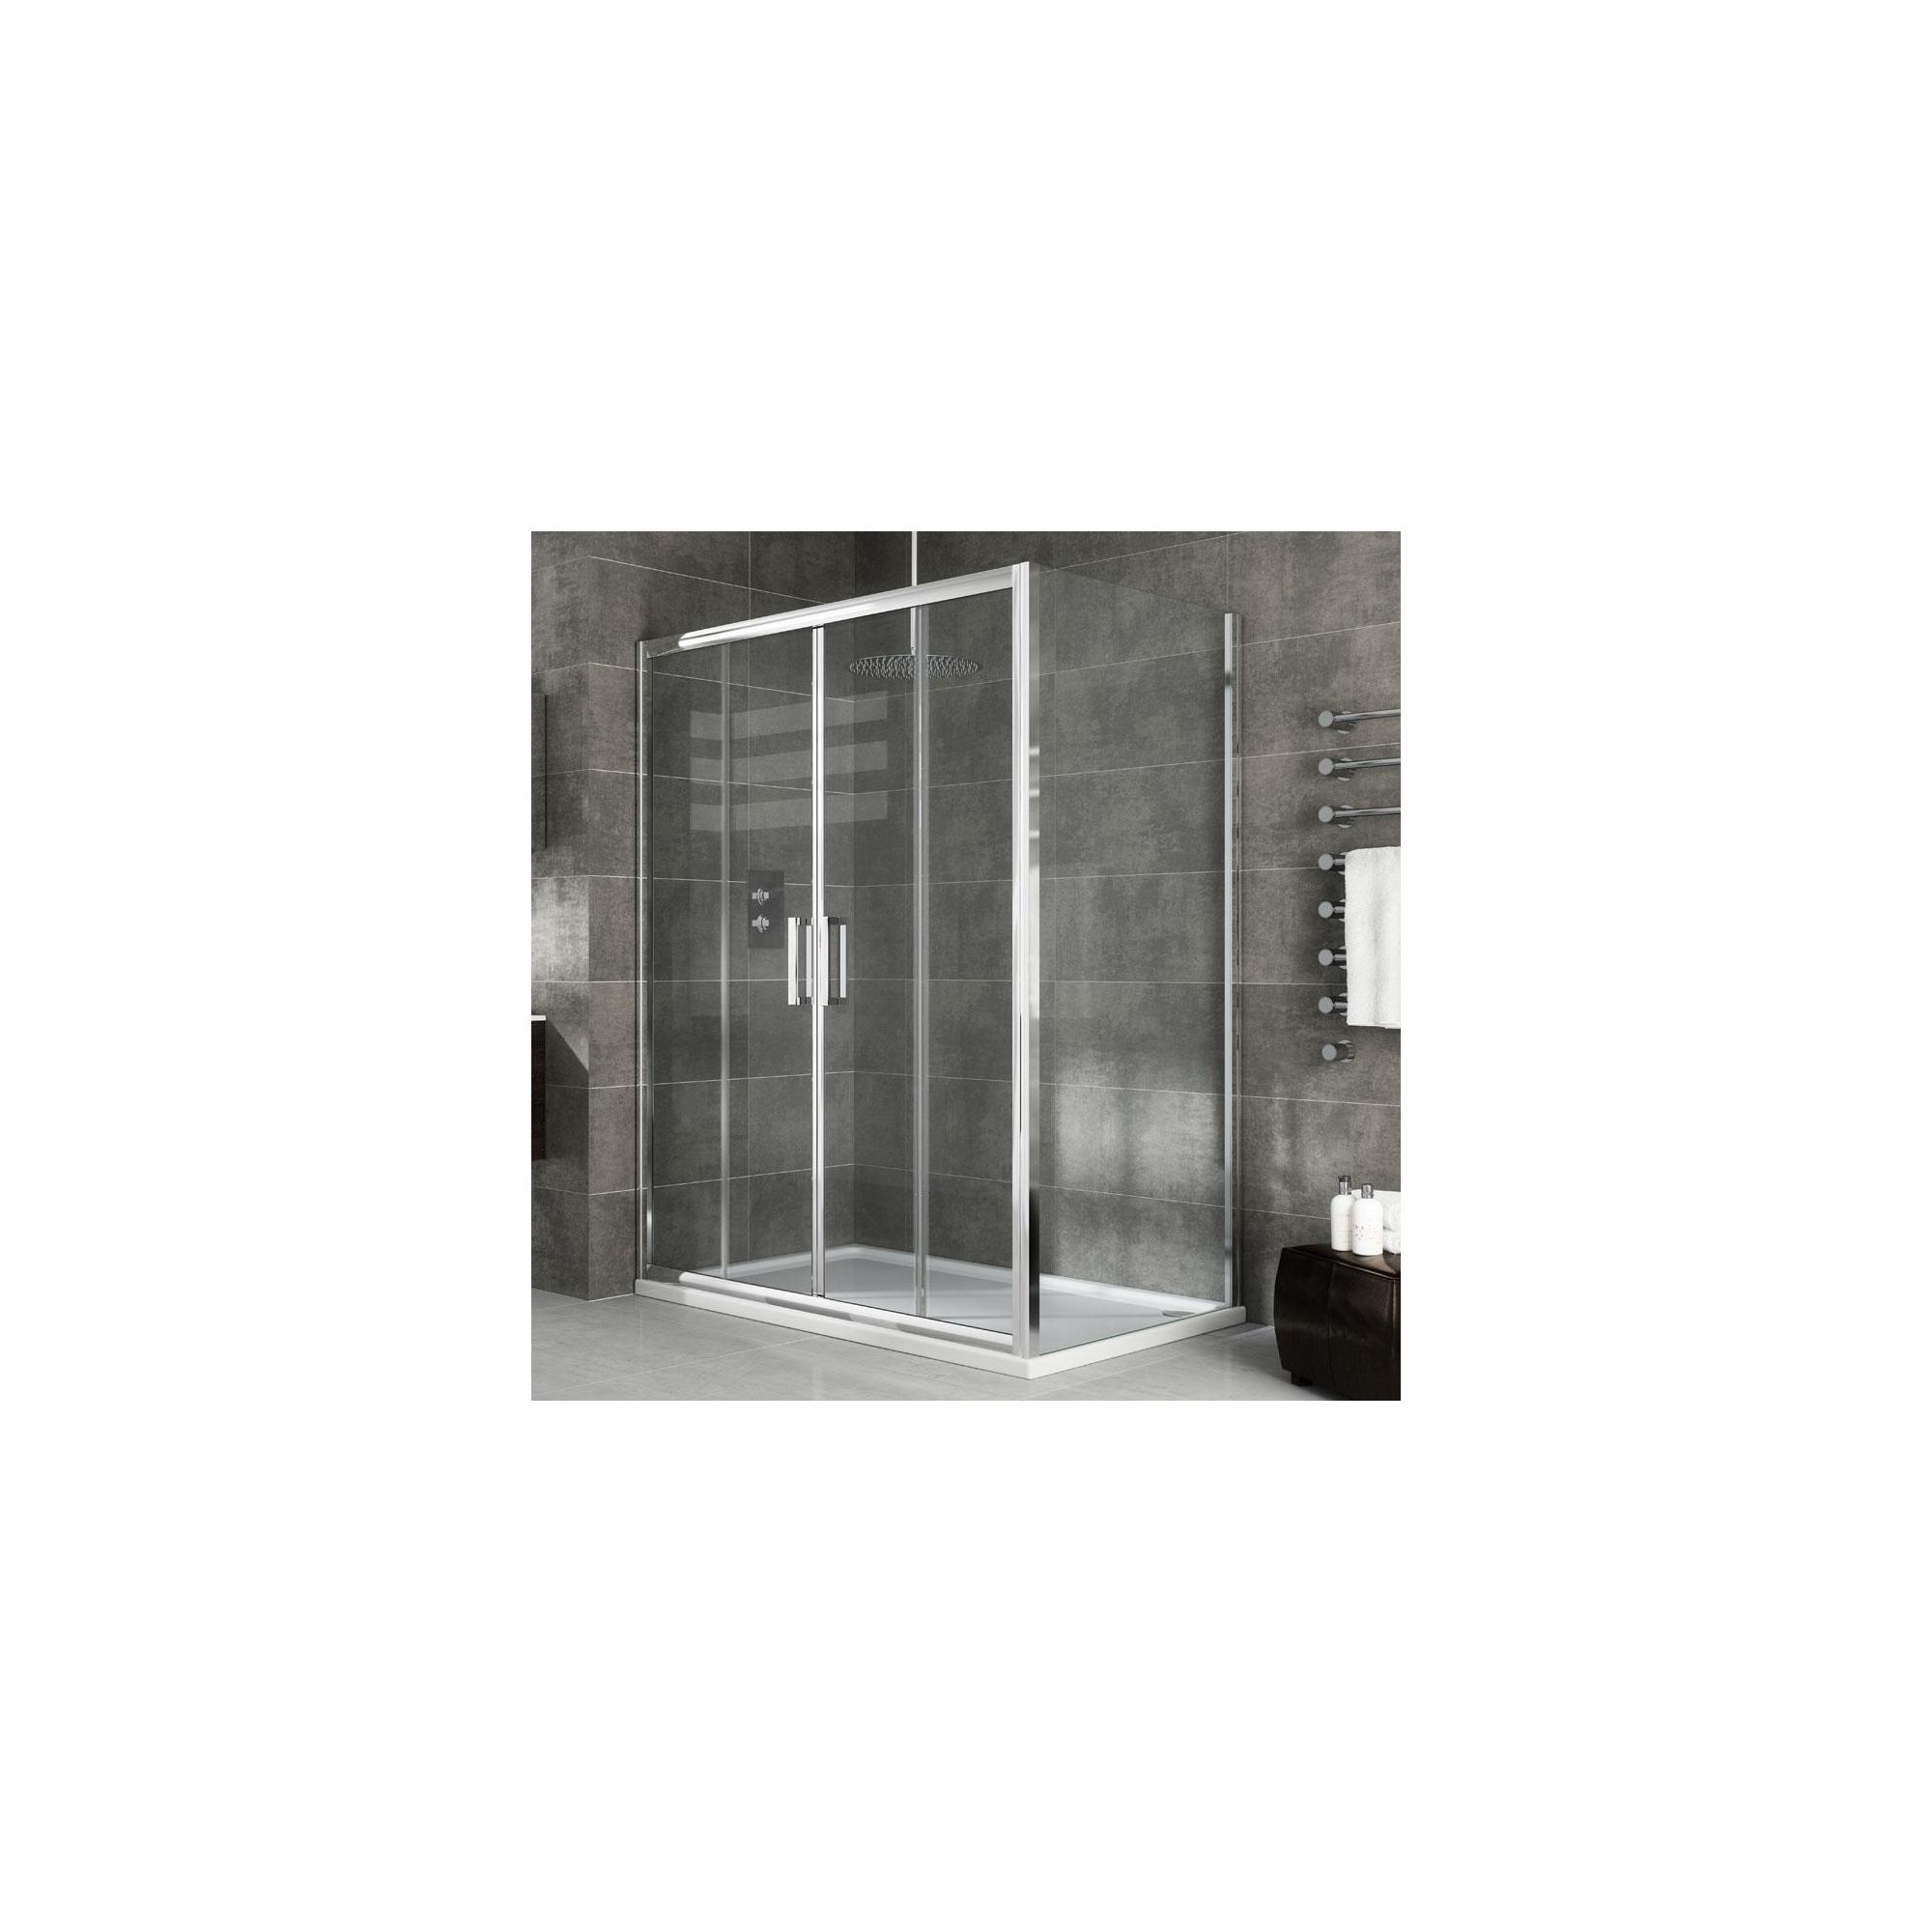 Elemis Eternity Two-Panel Jumbo Sliding Shower Door, 1400mm Wide, 8mm Glass at Tesco Direct